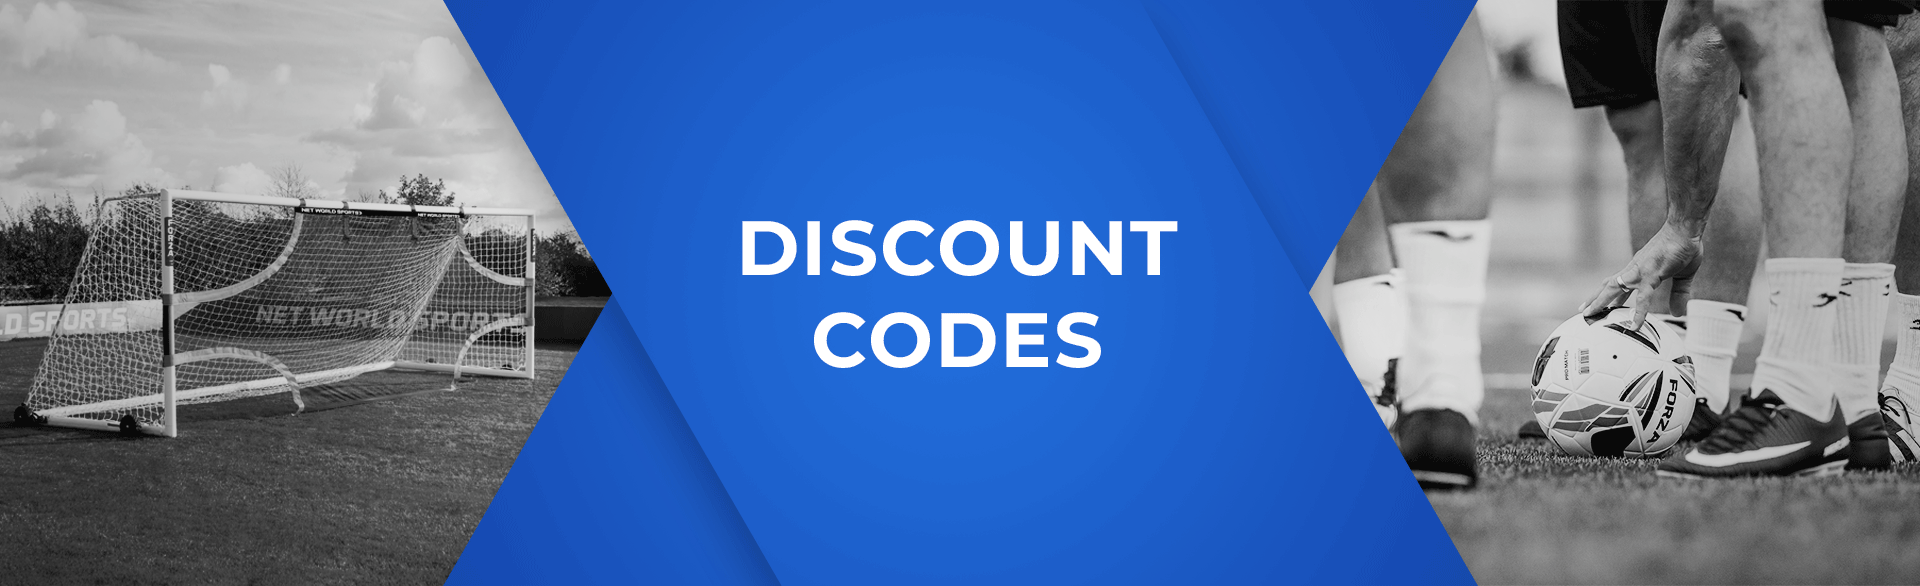 Discount Codes Our Current Promo Codes Net World Sports